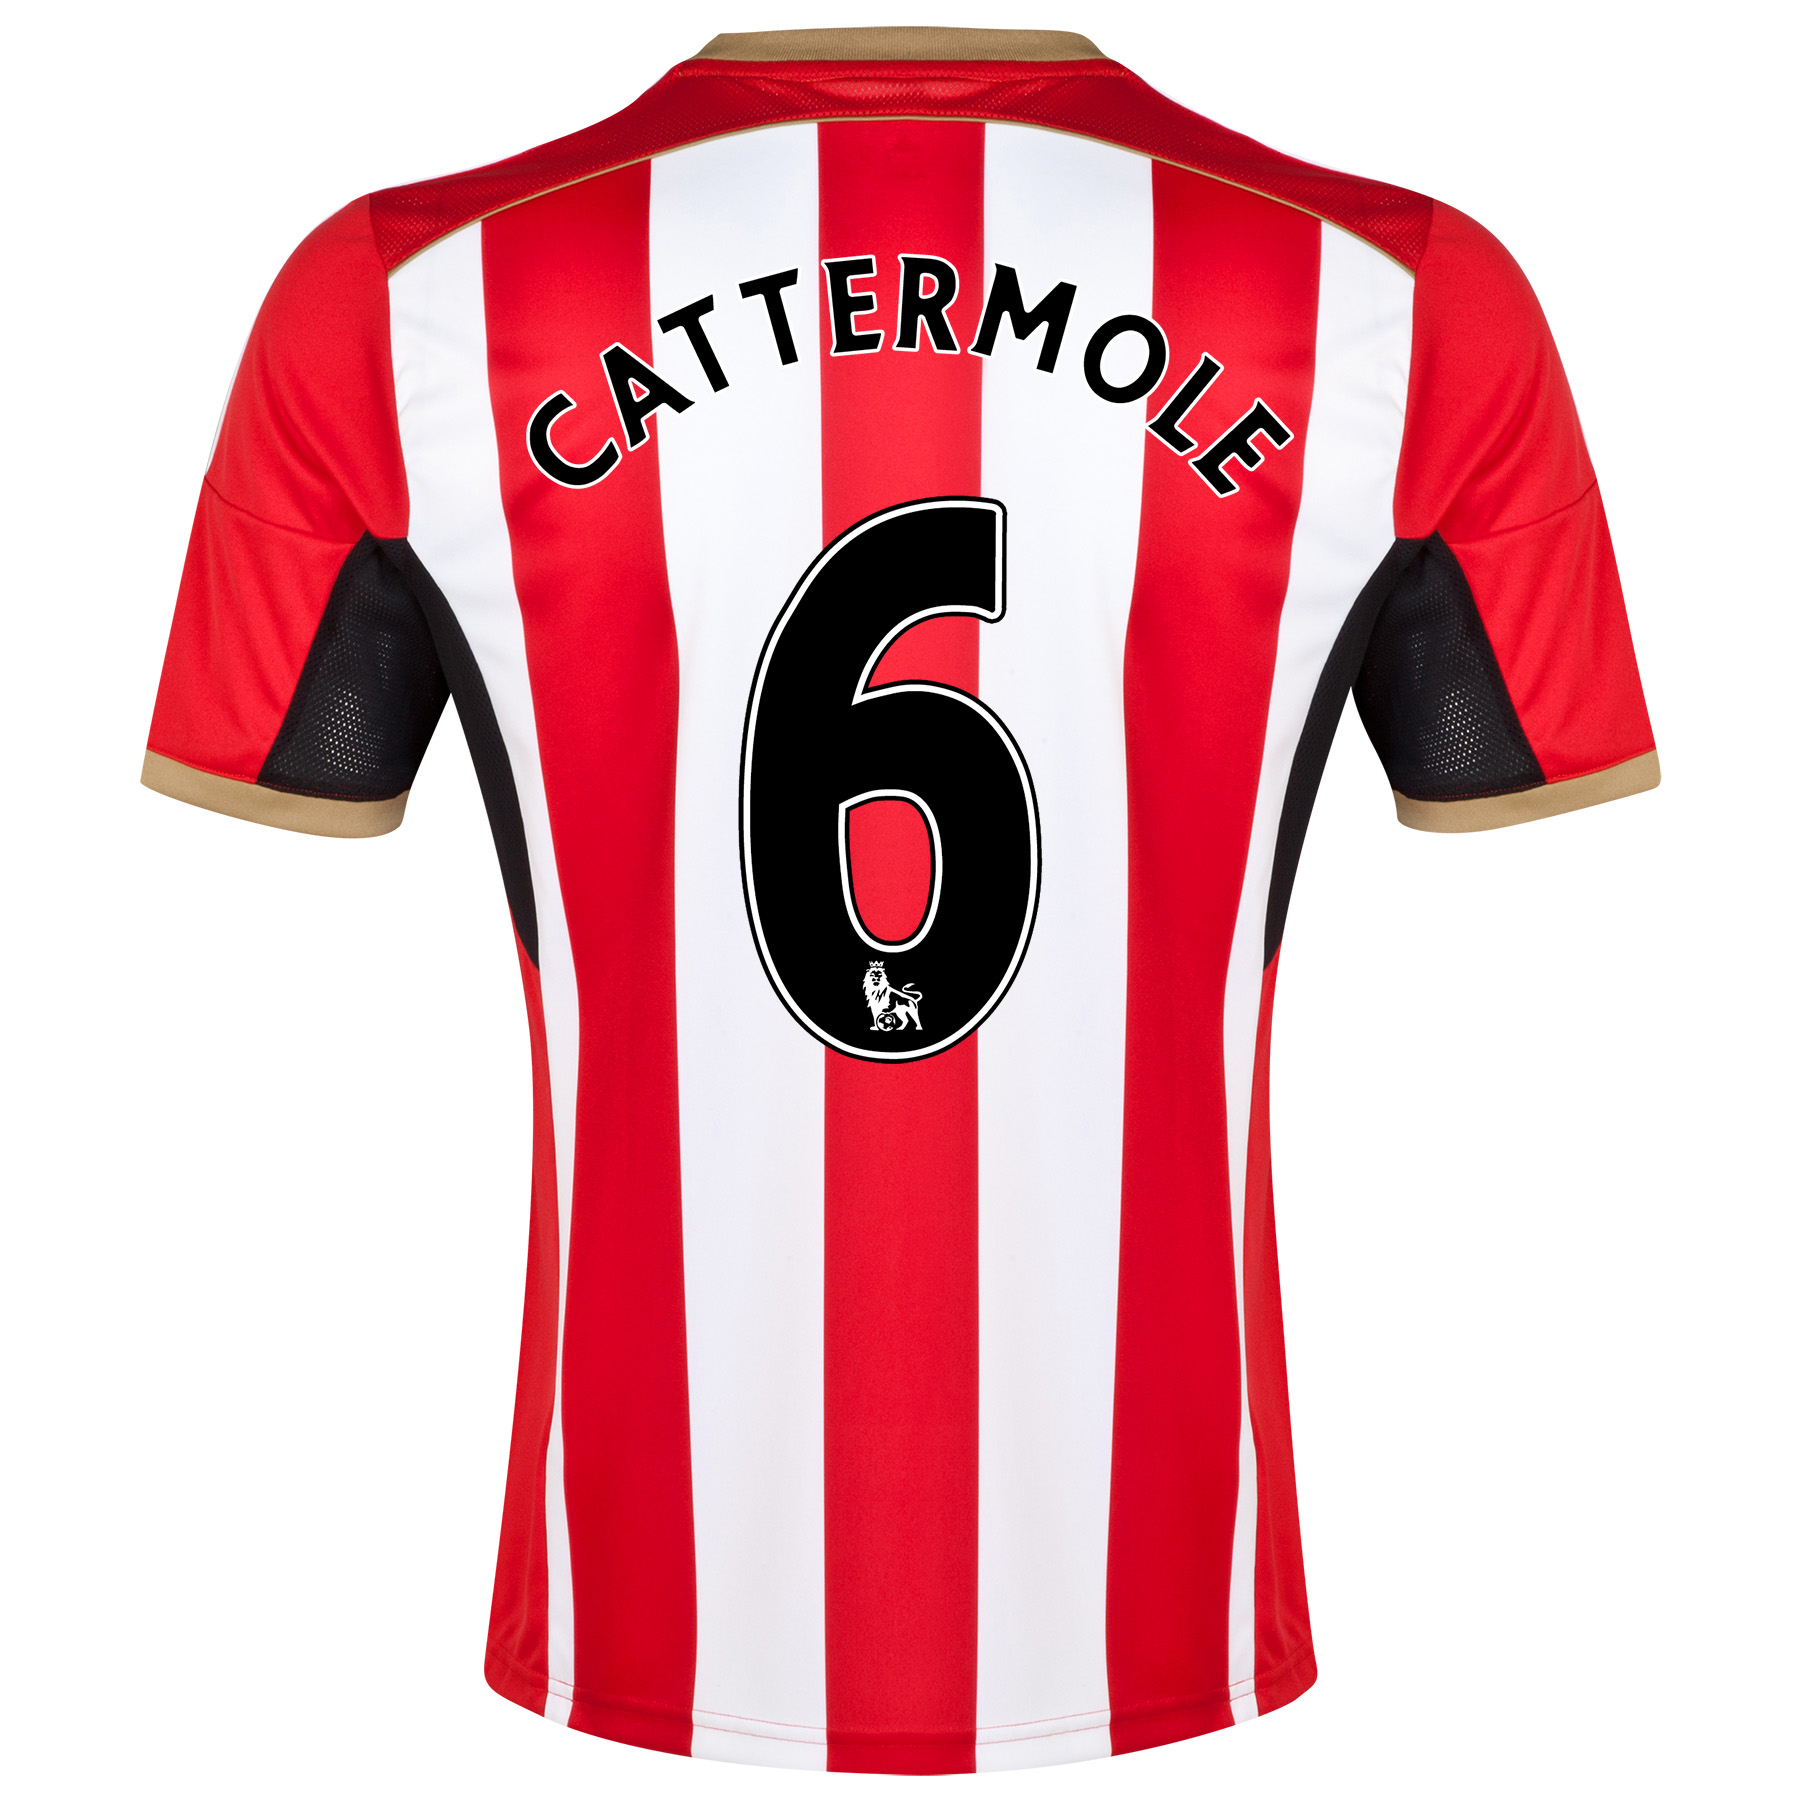 Sunderland Home Shirt 2014/15 Red with Cattermole 6 printing